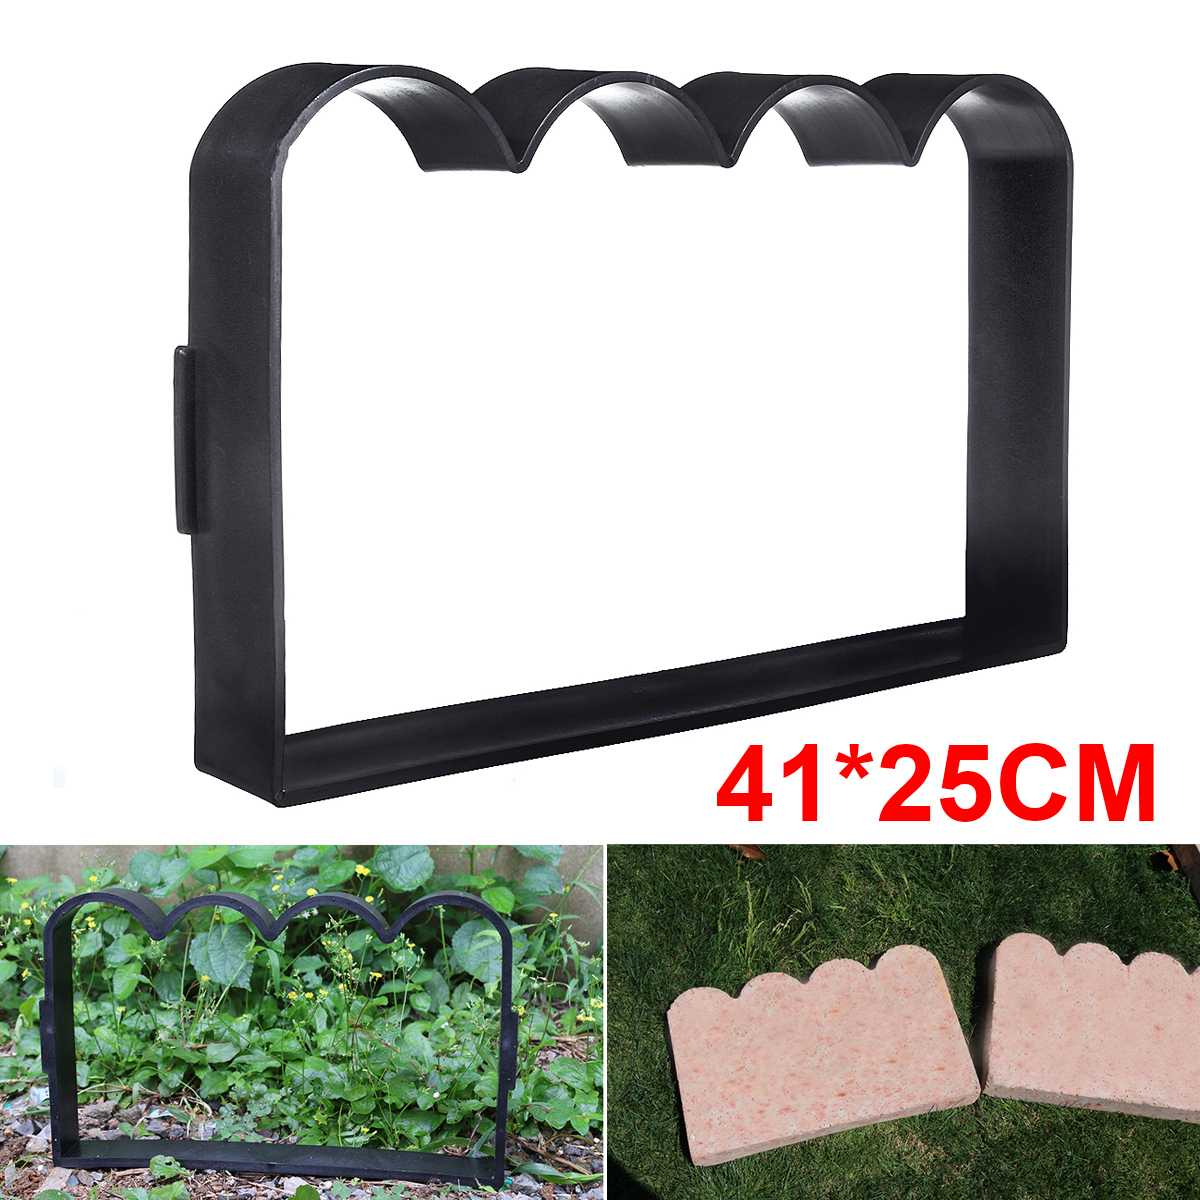 Garden Fence Mold  Brick Cement Molud Antique Fence Stone Mold Path DIY Courtyard Flower Pool Fish Pond Lawn Pathmate Mold